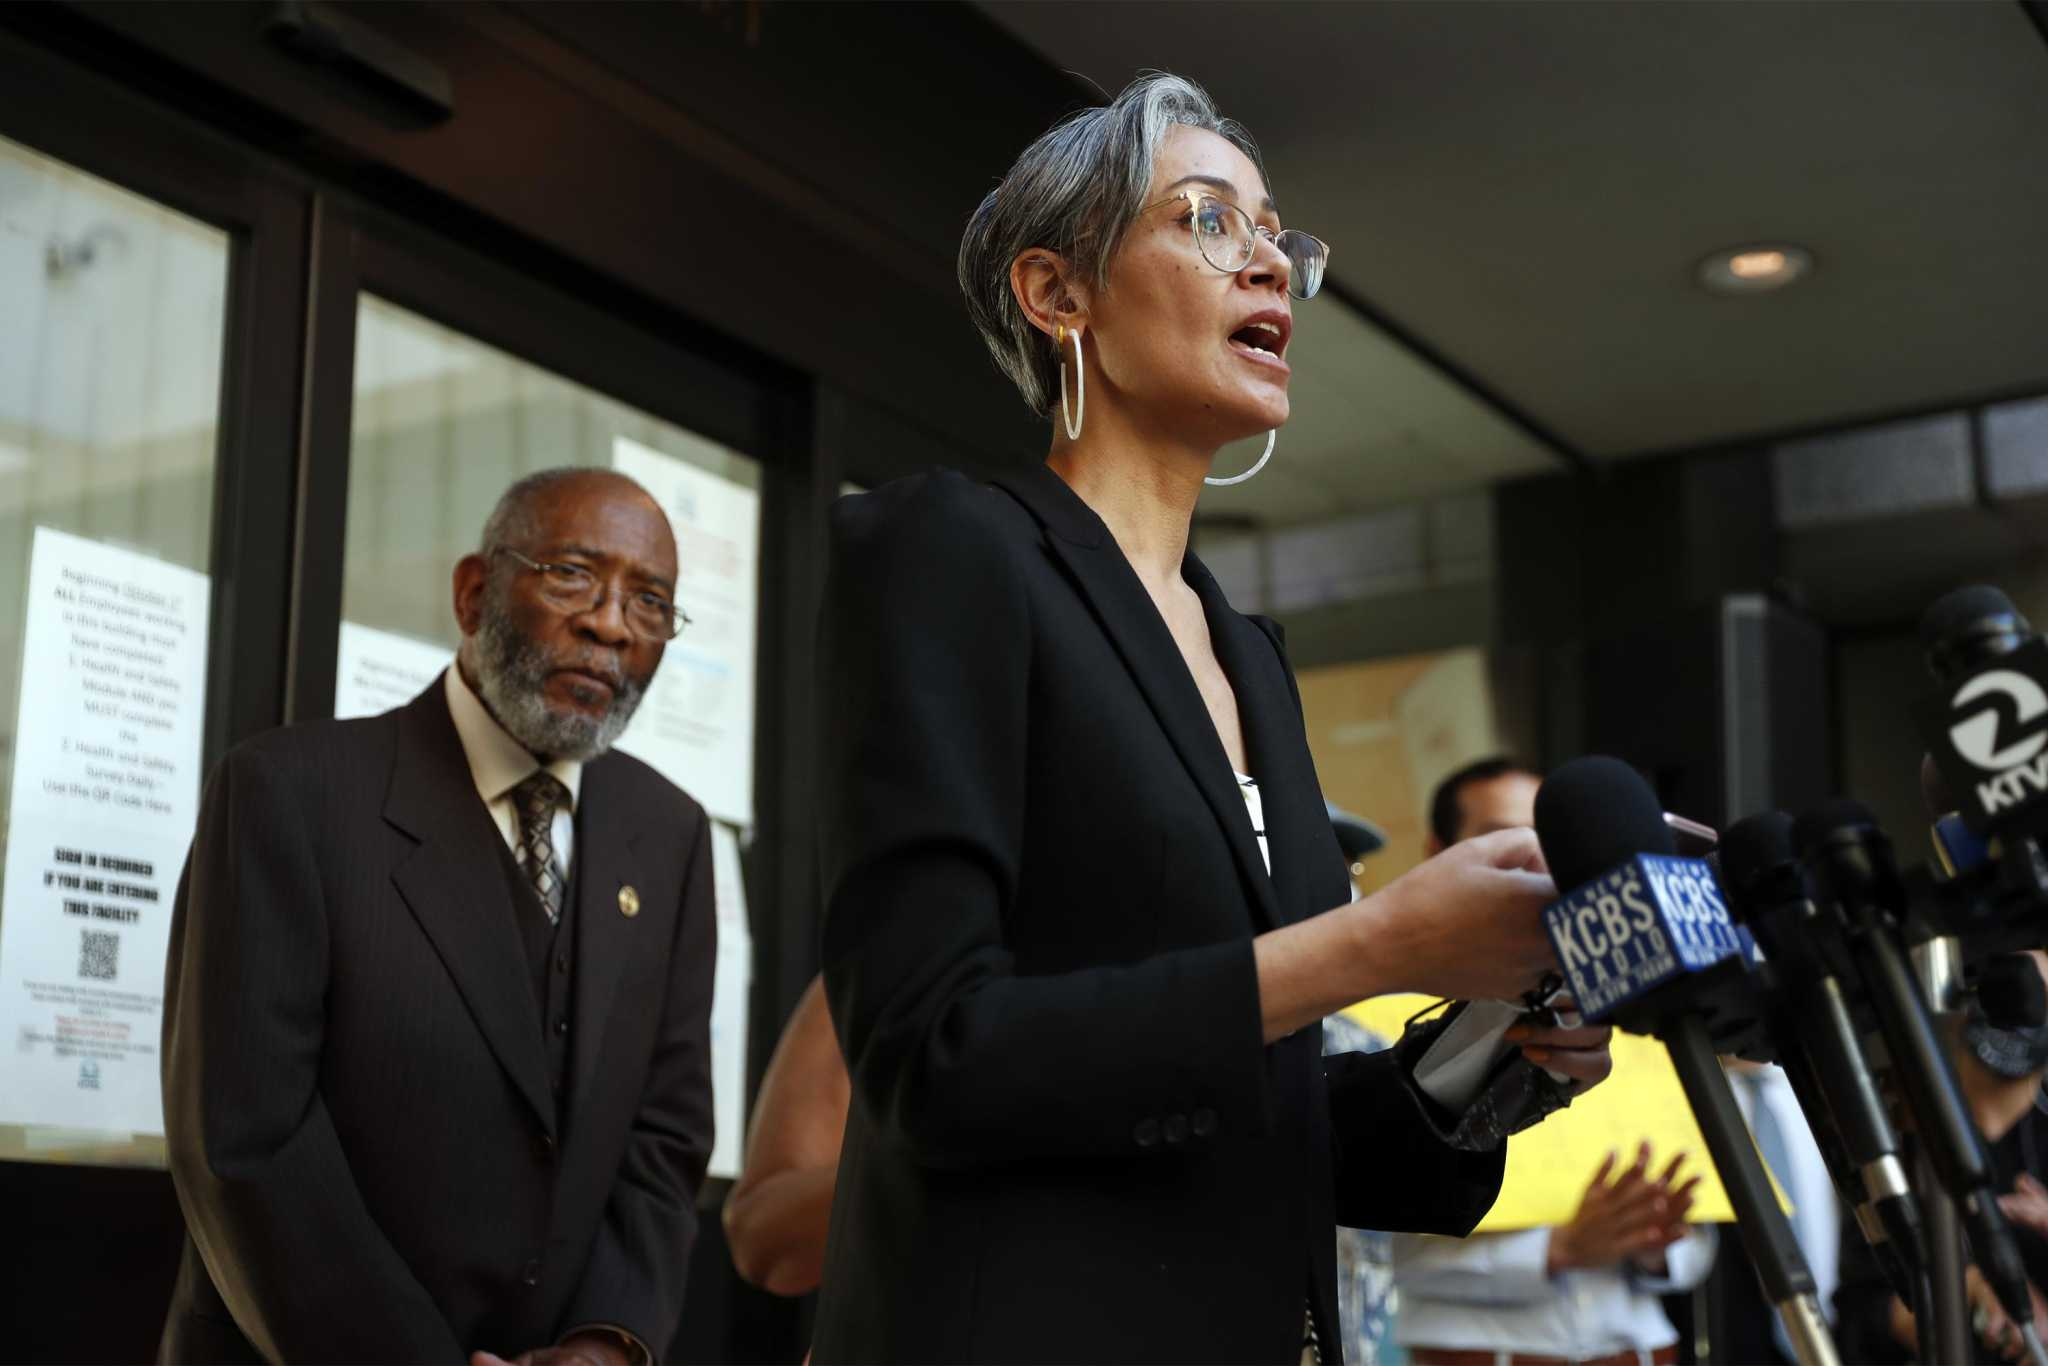 Alison Collins and her husband violated S.F. building permit laws in addition to illegal merger, city says